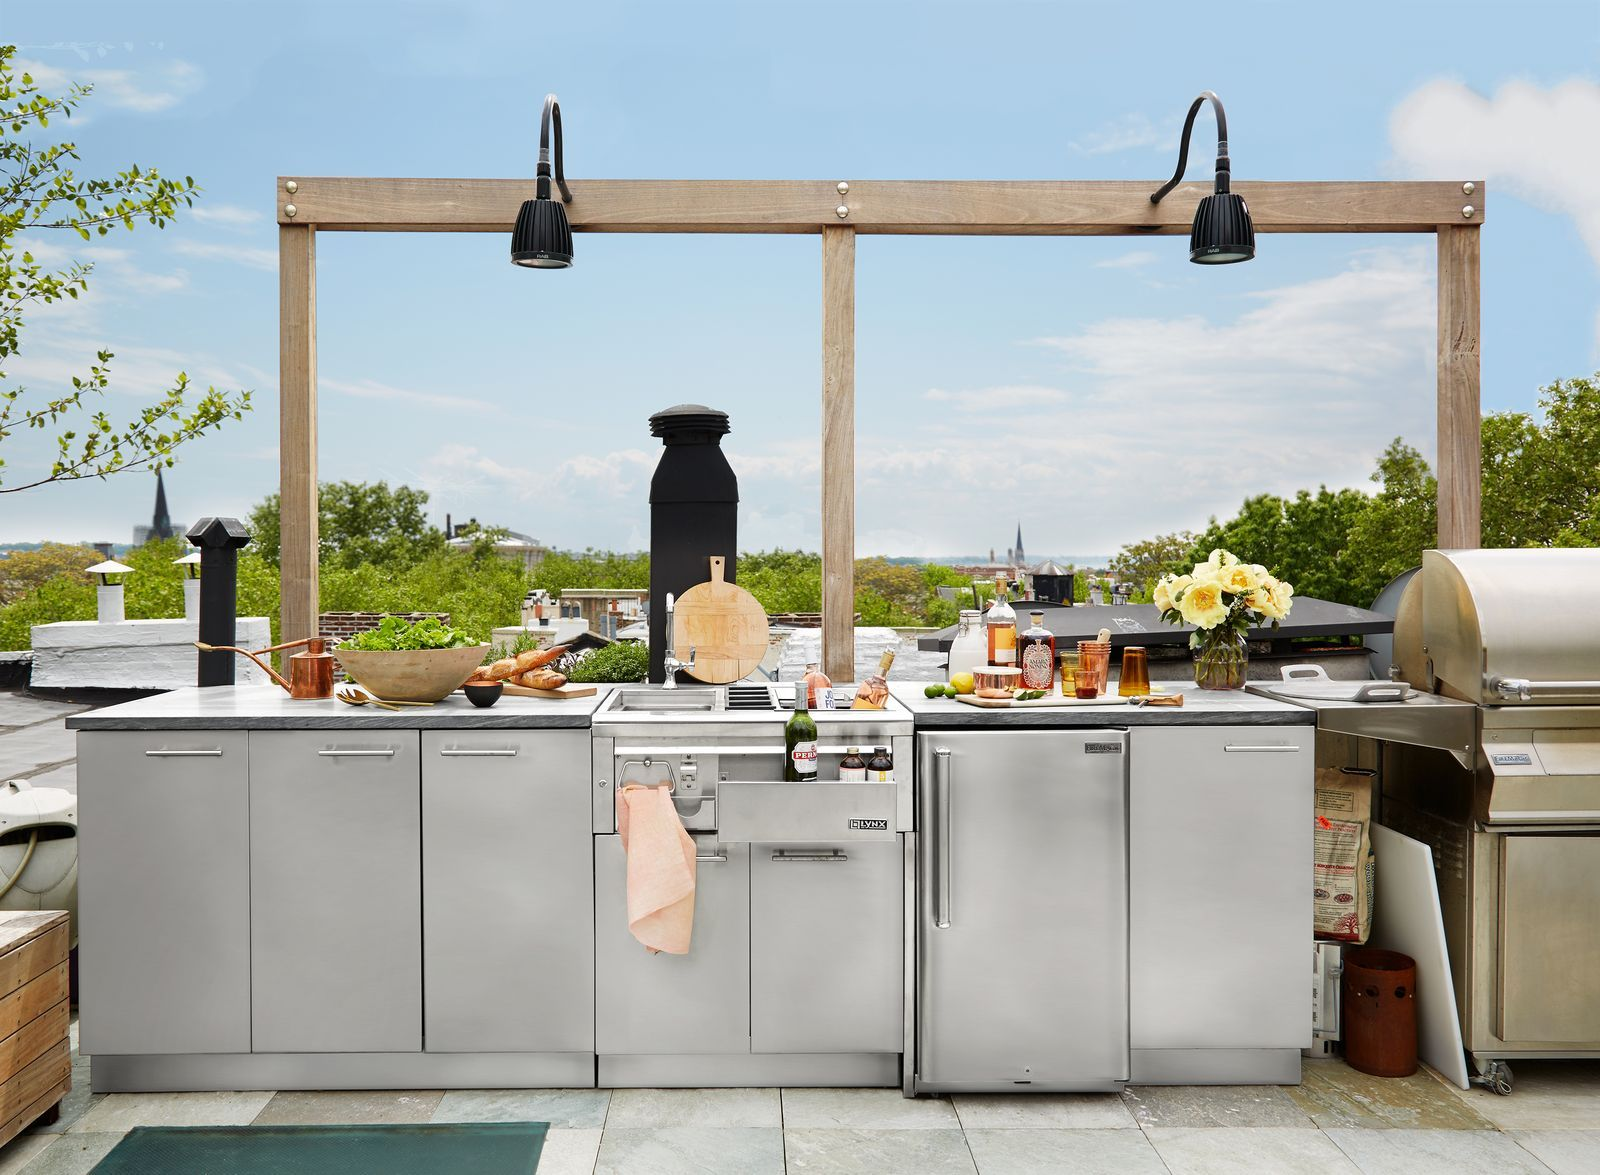 Pin On Outdoor Kitchens And Dining Spaces